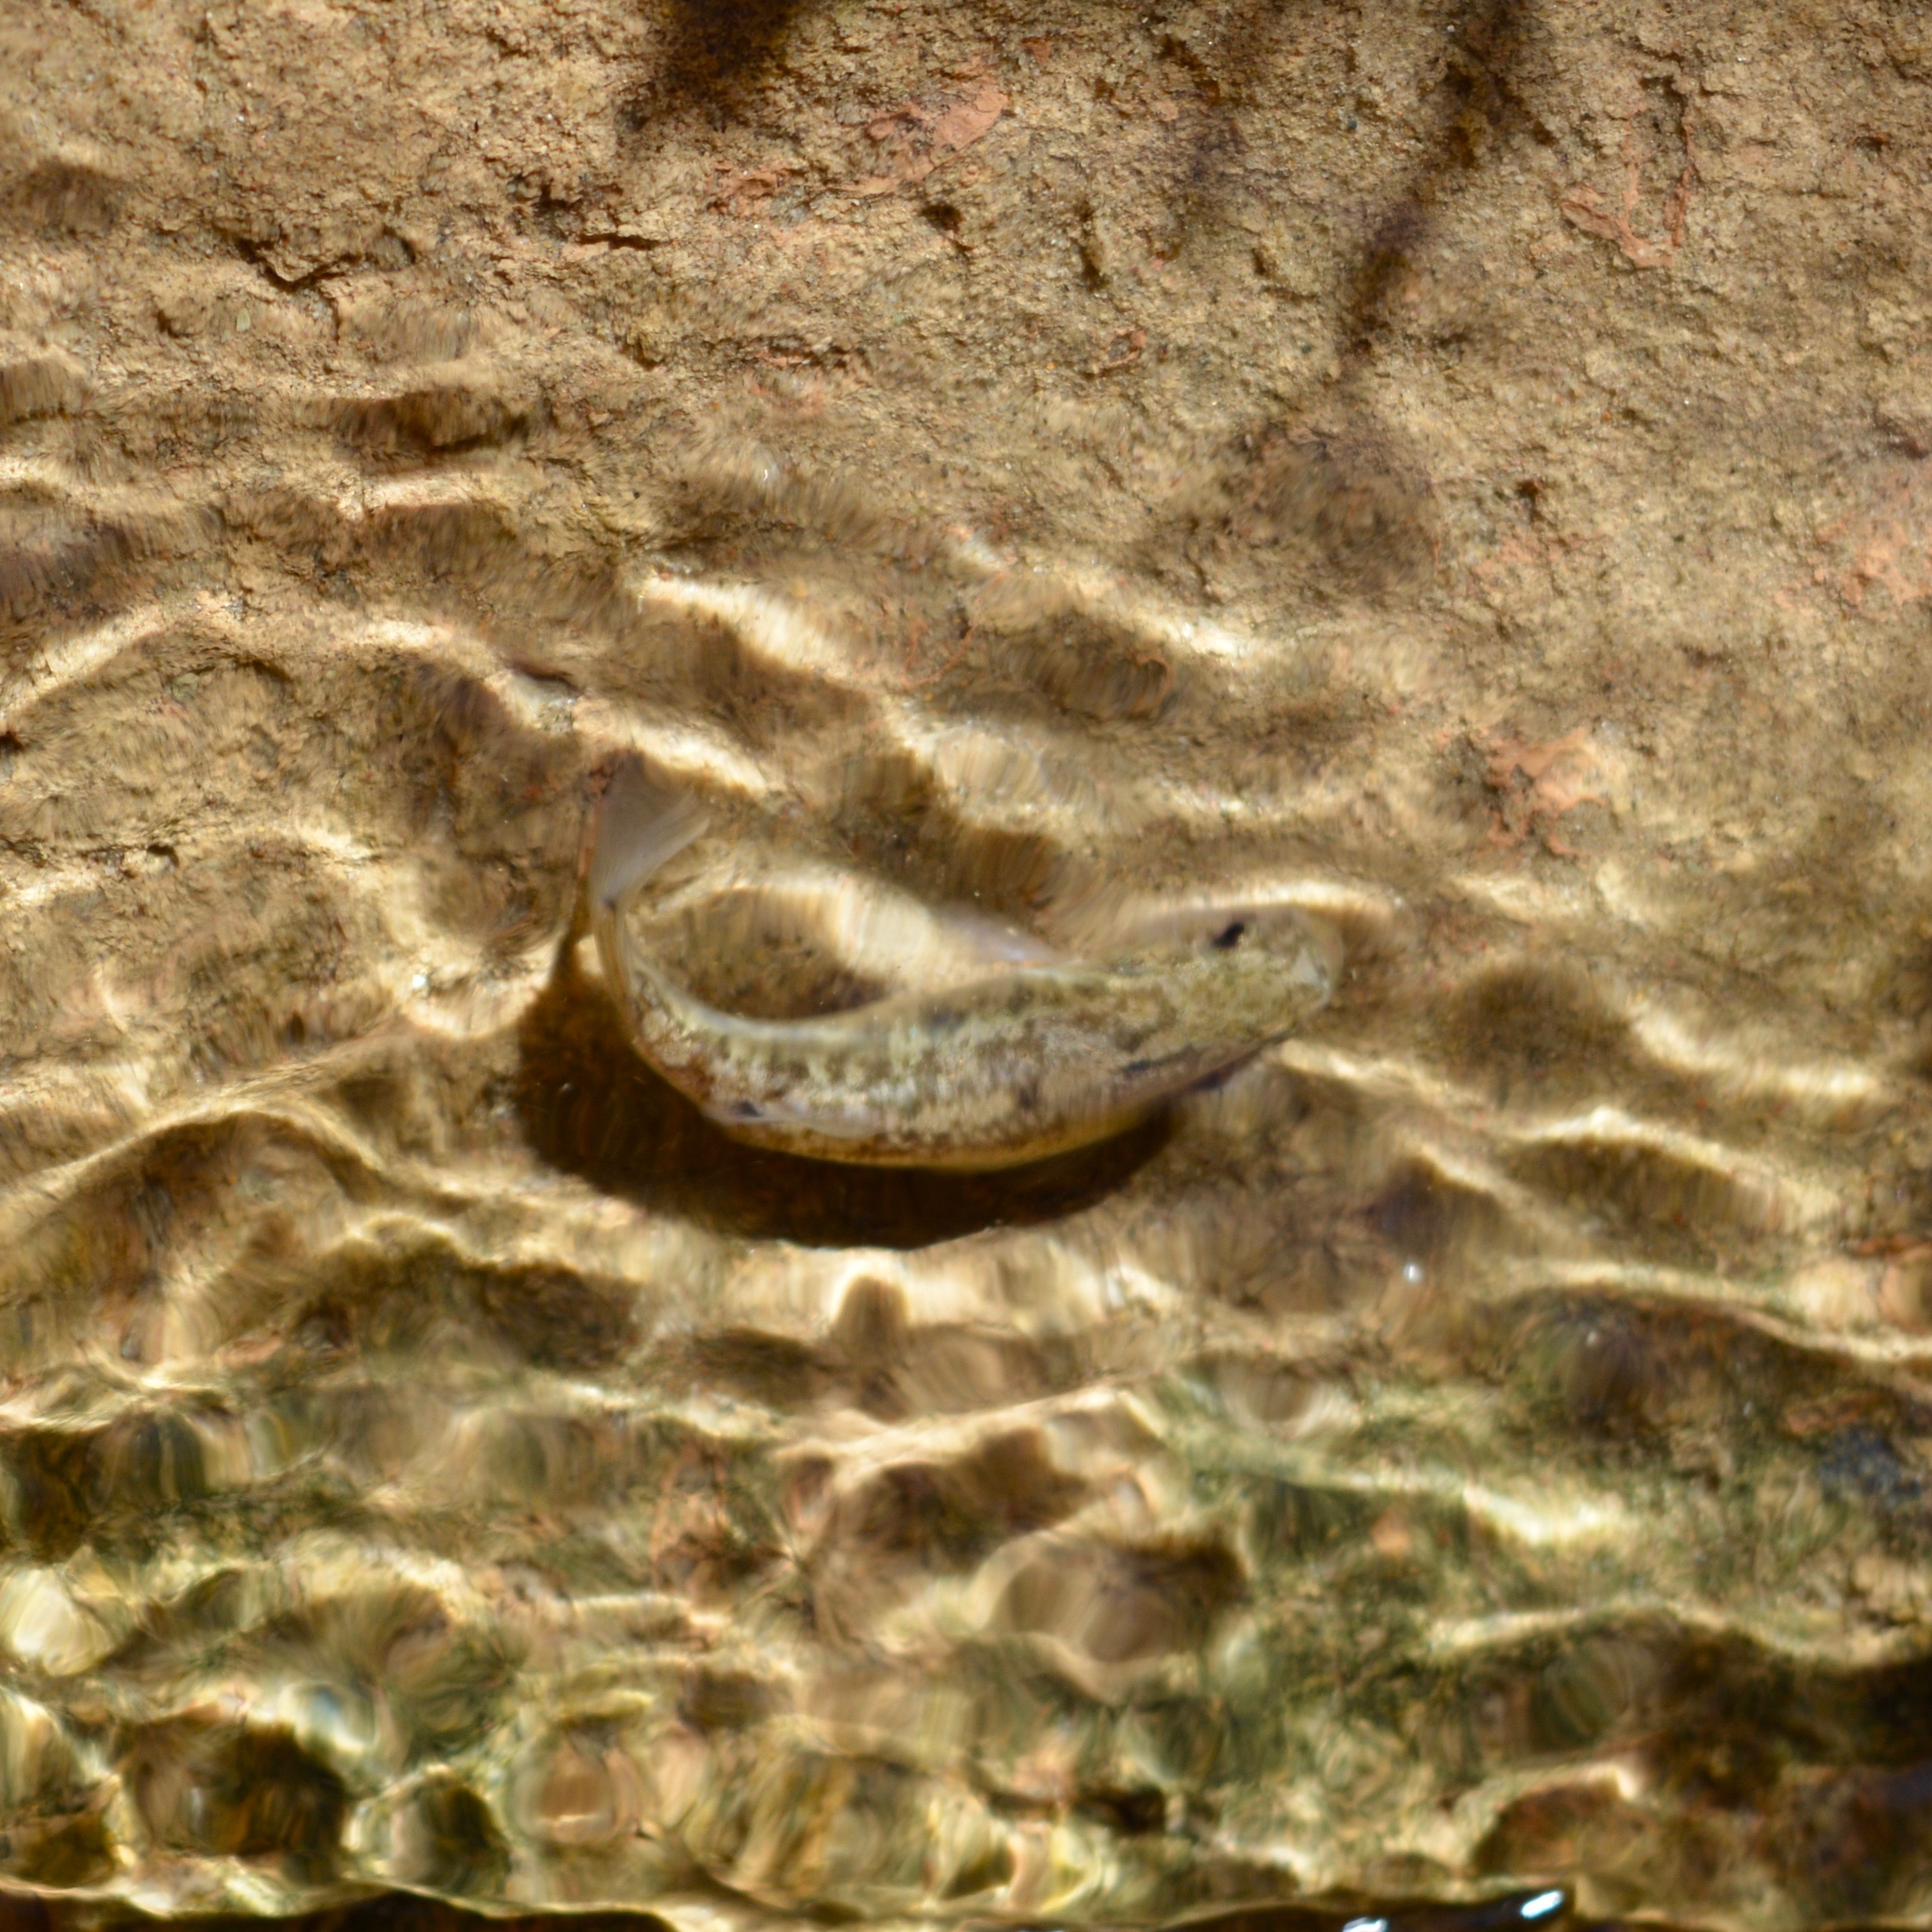 Desert Pupfish in Salt Creek